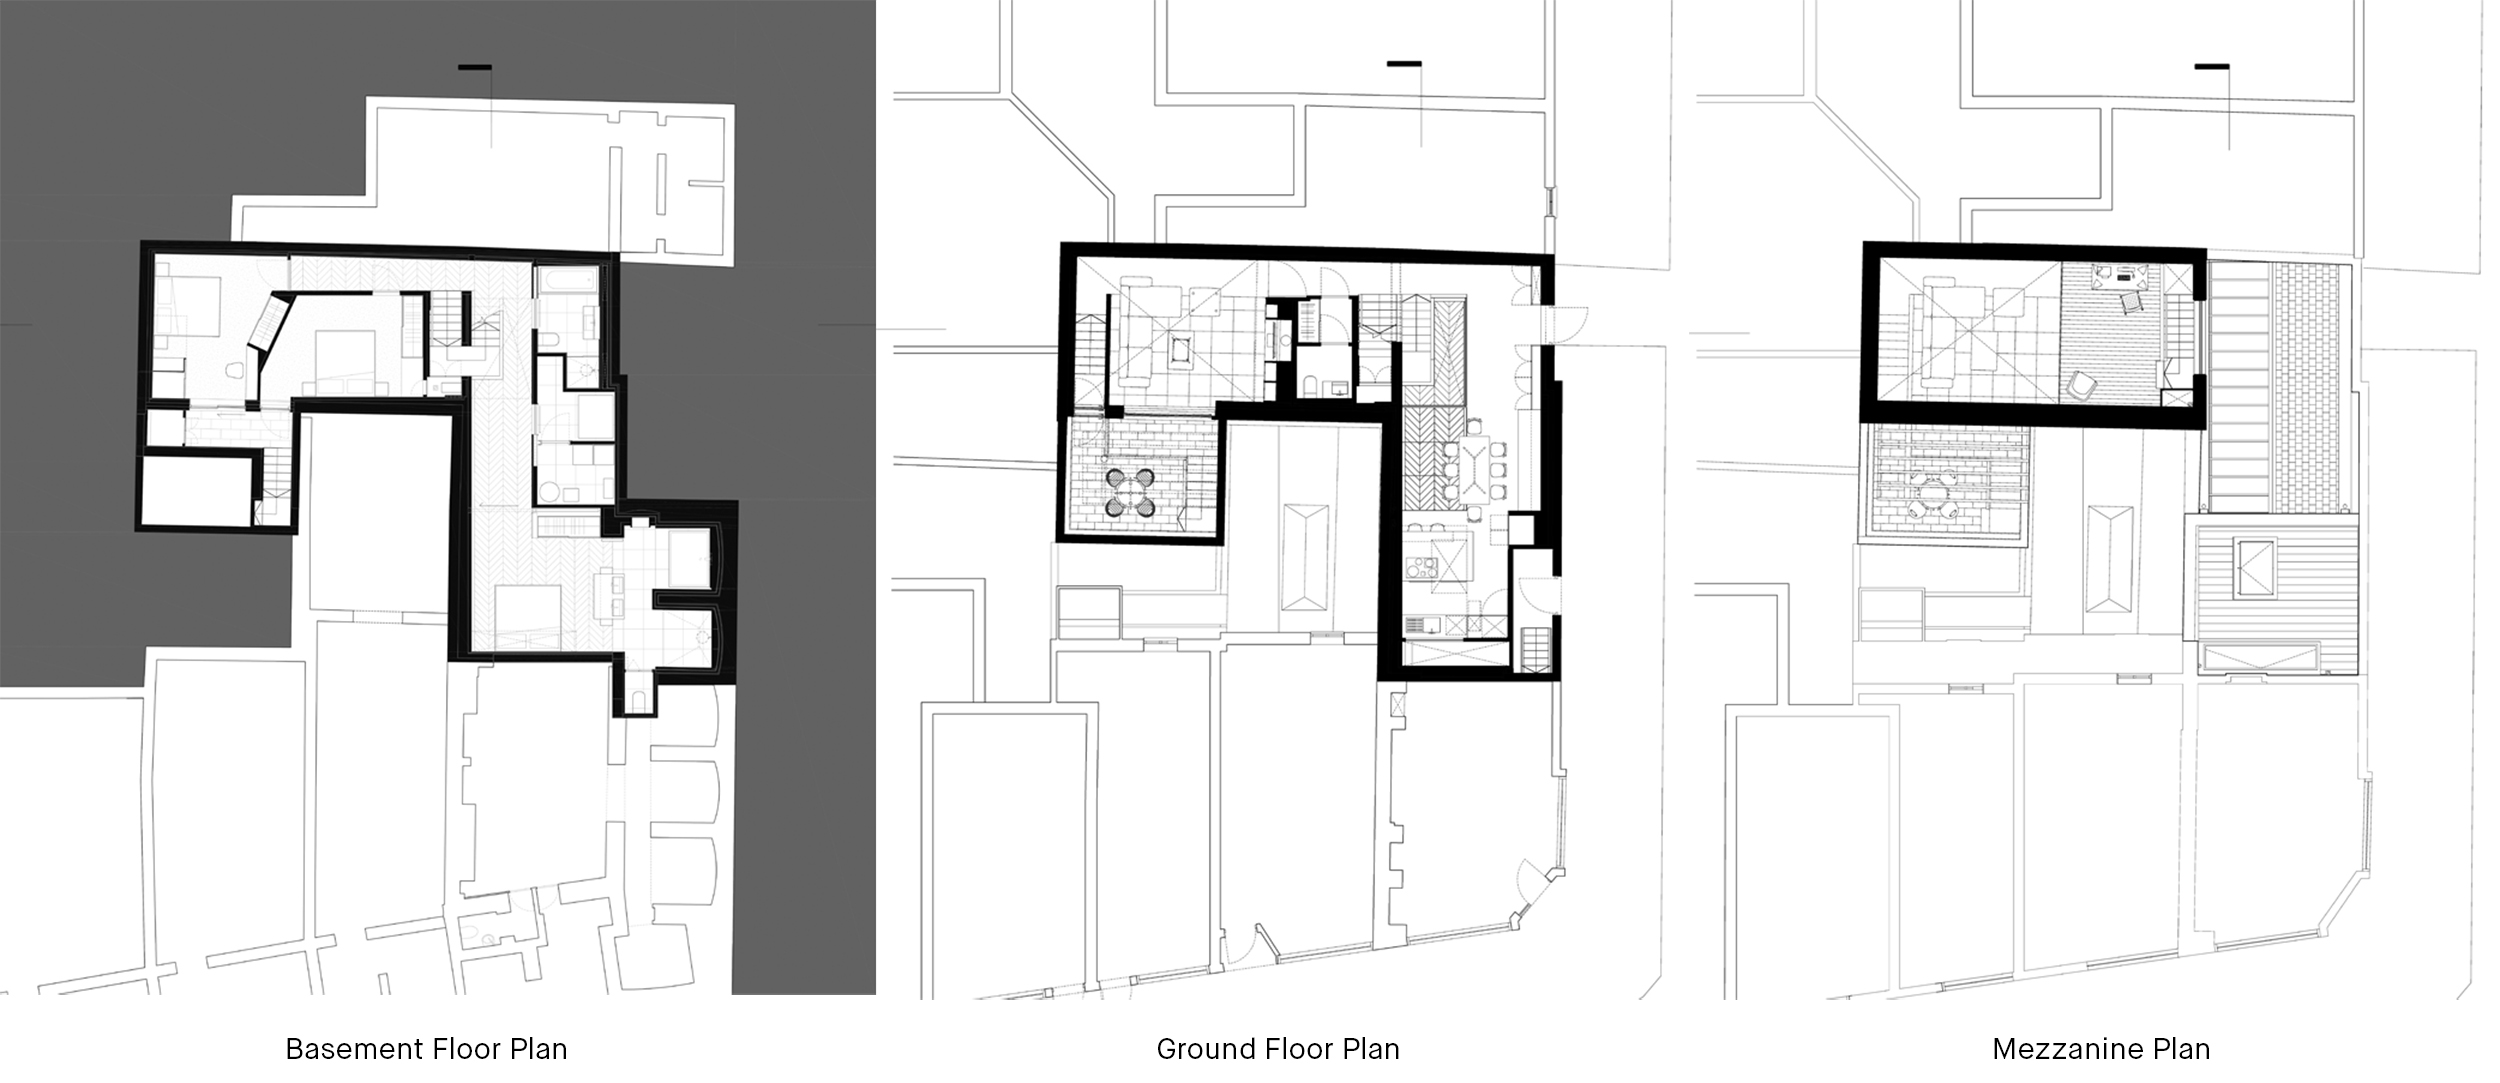 Hidden House Chelsea Knightsbridge LTS Architects drawings